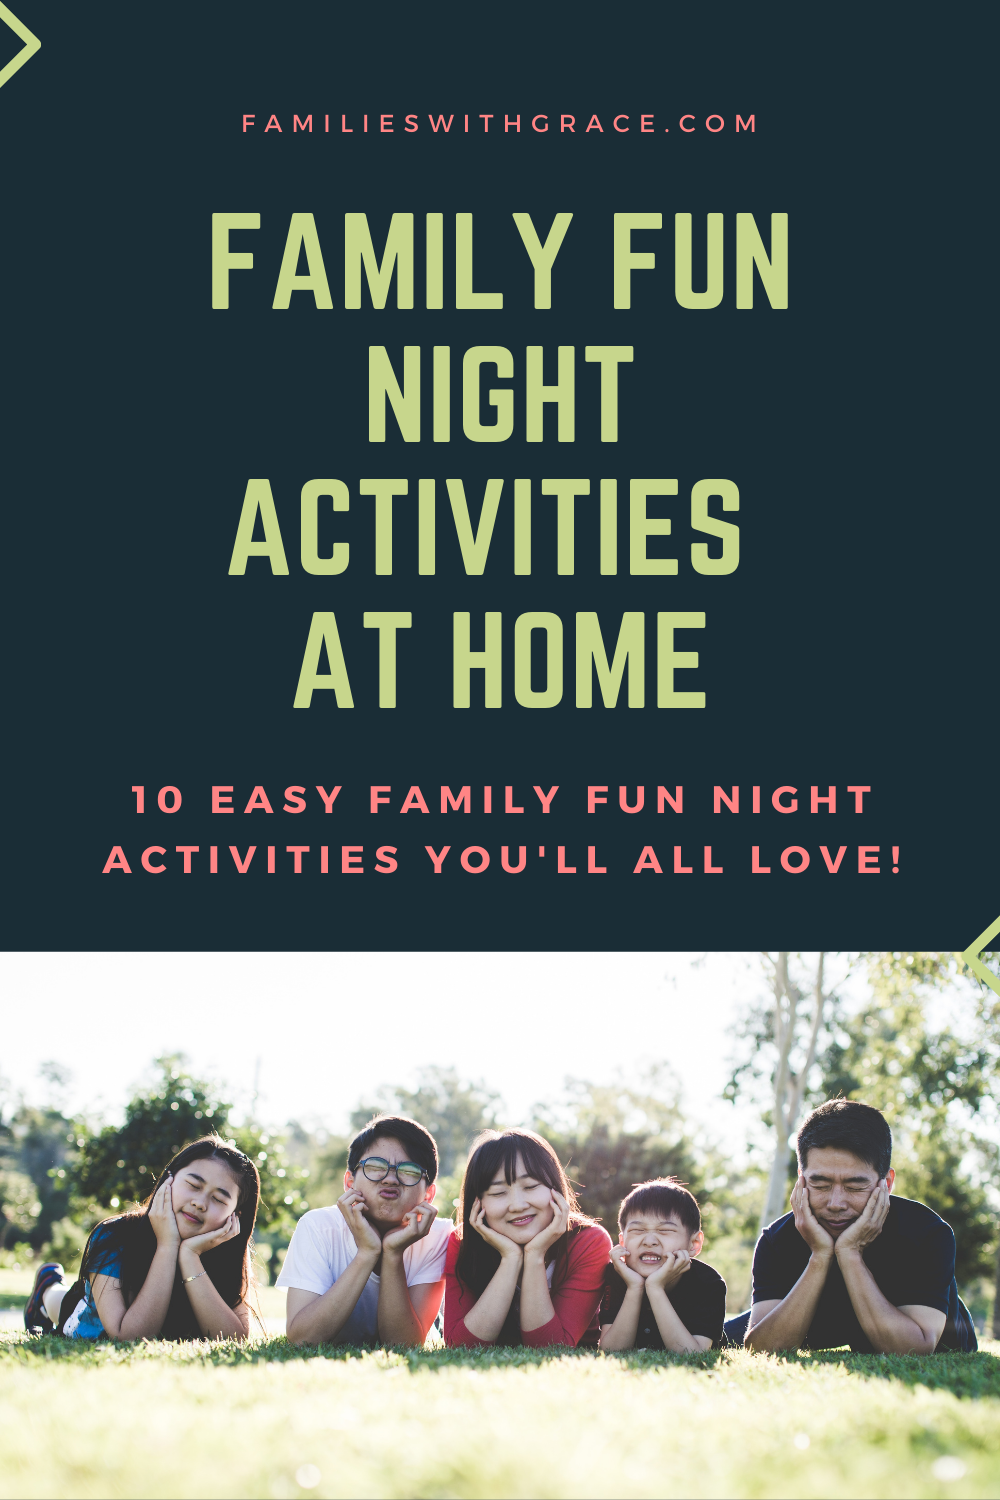 Family fun night activities at home